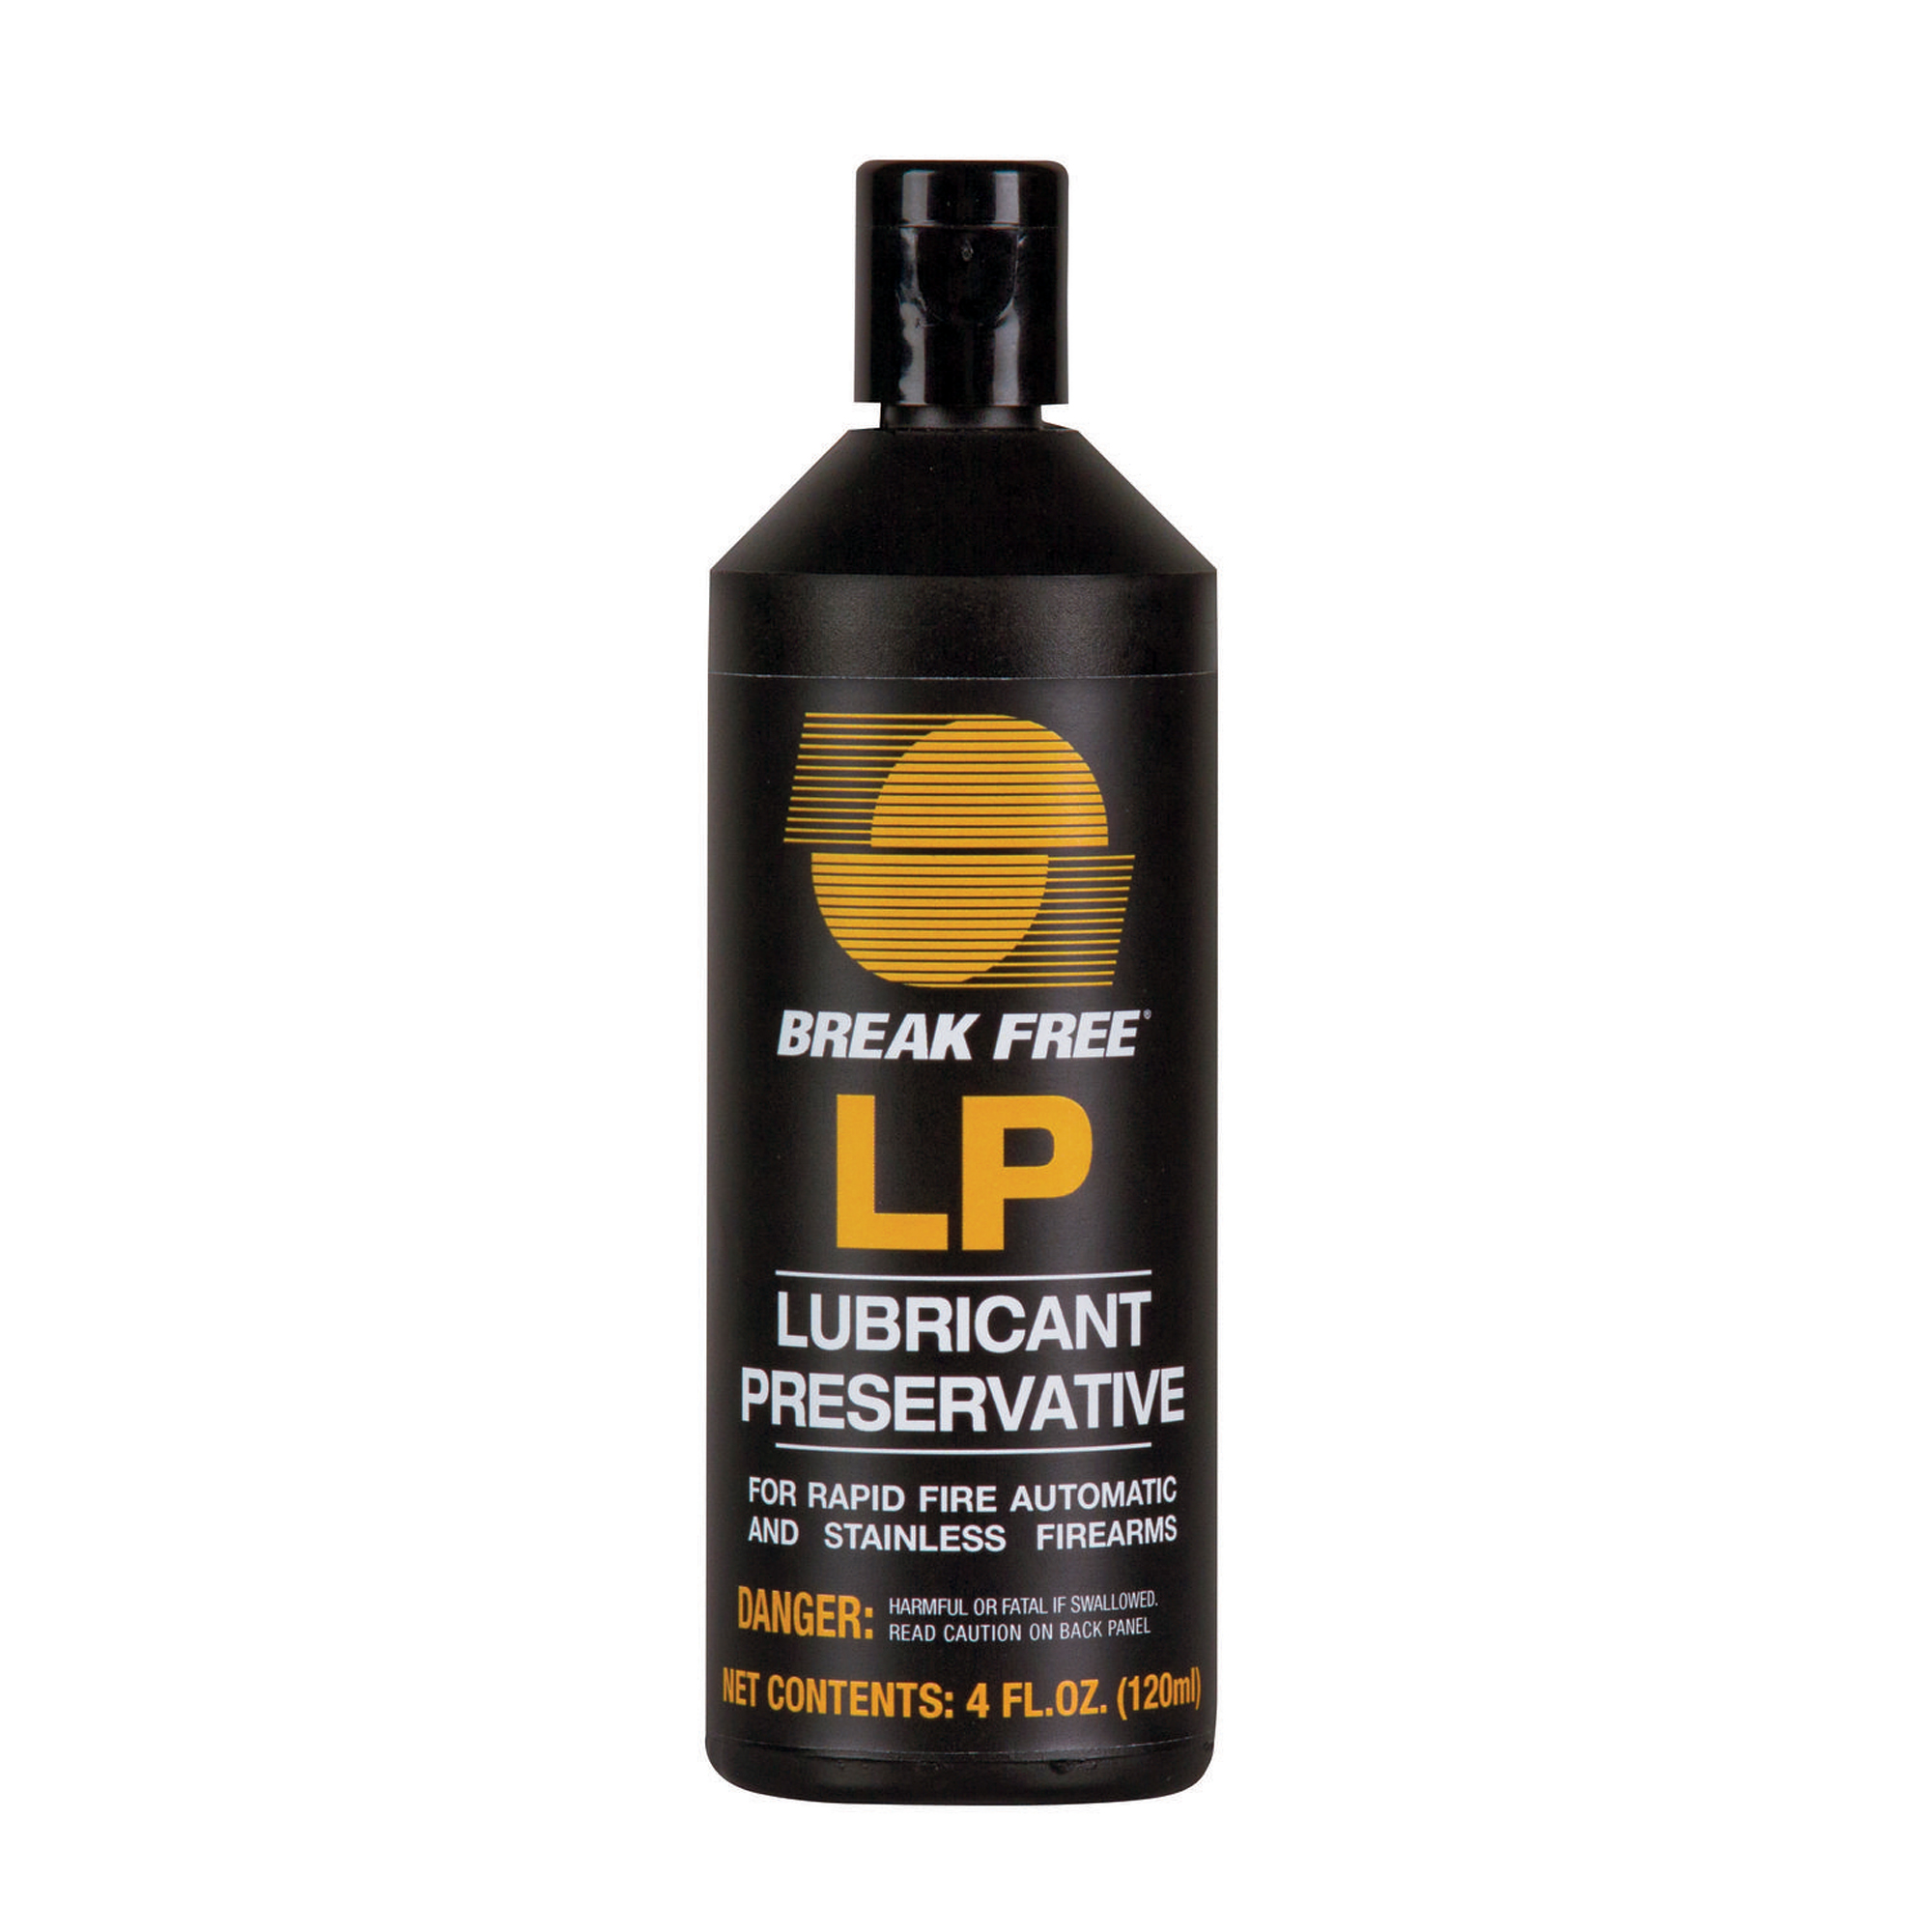 """Designed for use under long and sustained fire"""" Break Free LP Lubricant/Preservative is ideal for law enforcement"""" target shooters and anyone using rapid fire automatic handguns and rifles. Originally developed for fully automatic weapons used by the U.S. military"""" this proprietary formula ensures consistent cyclic rates are maintained and gun actions operate smoothly"""" even under adverse conditions and extended firing periods. Break Free LP doesn't dry out"""" harden"""" solidify or attract metal fines and other contaminants."""